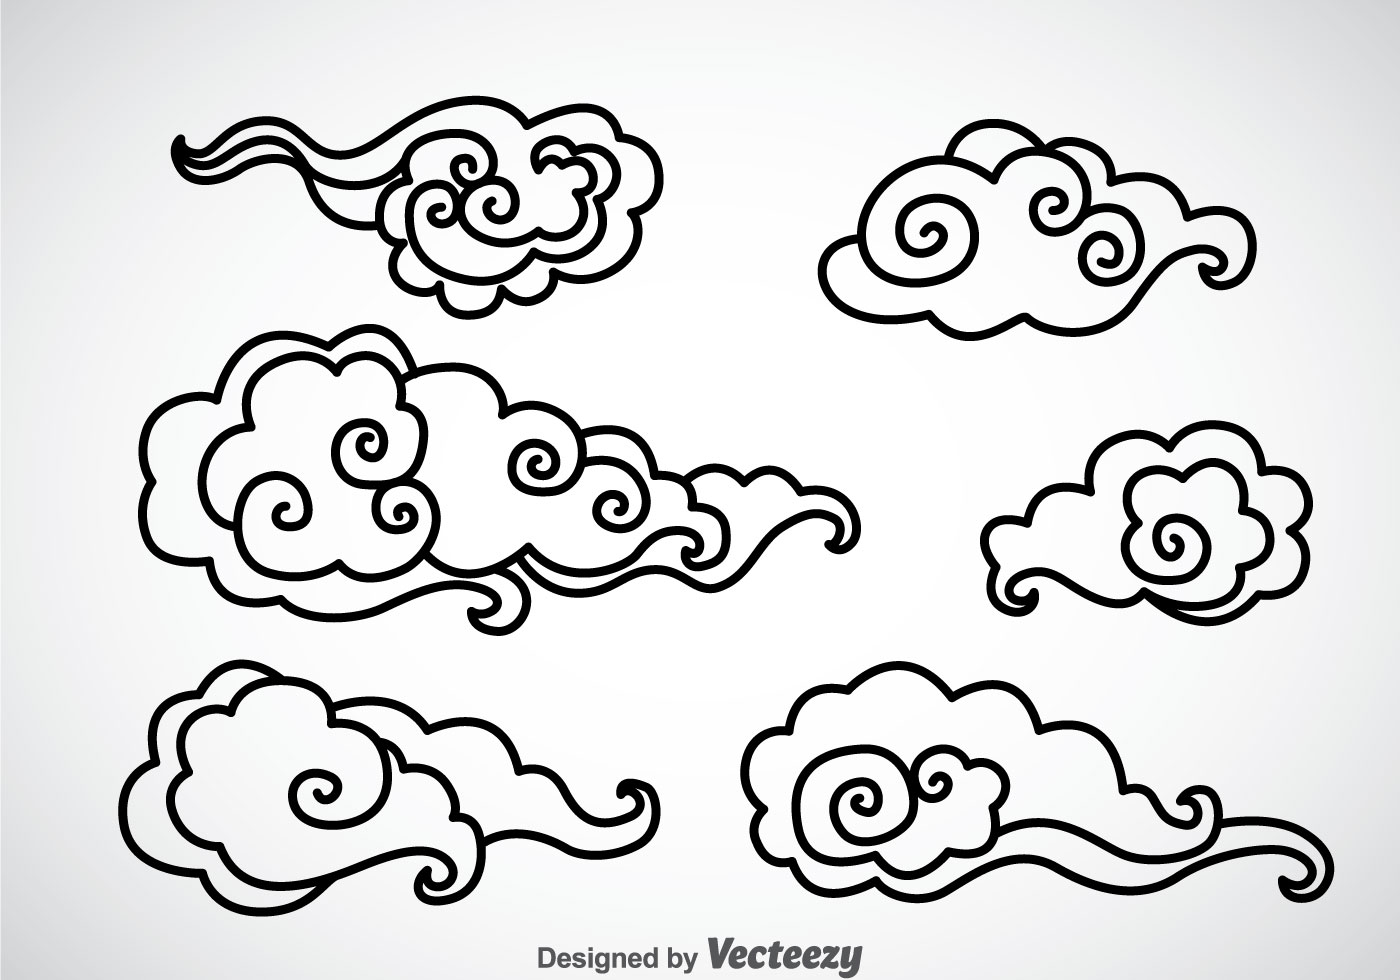 Black Outline Chinese Clouds Vector - Download Free Vector ...